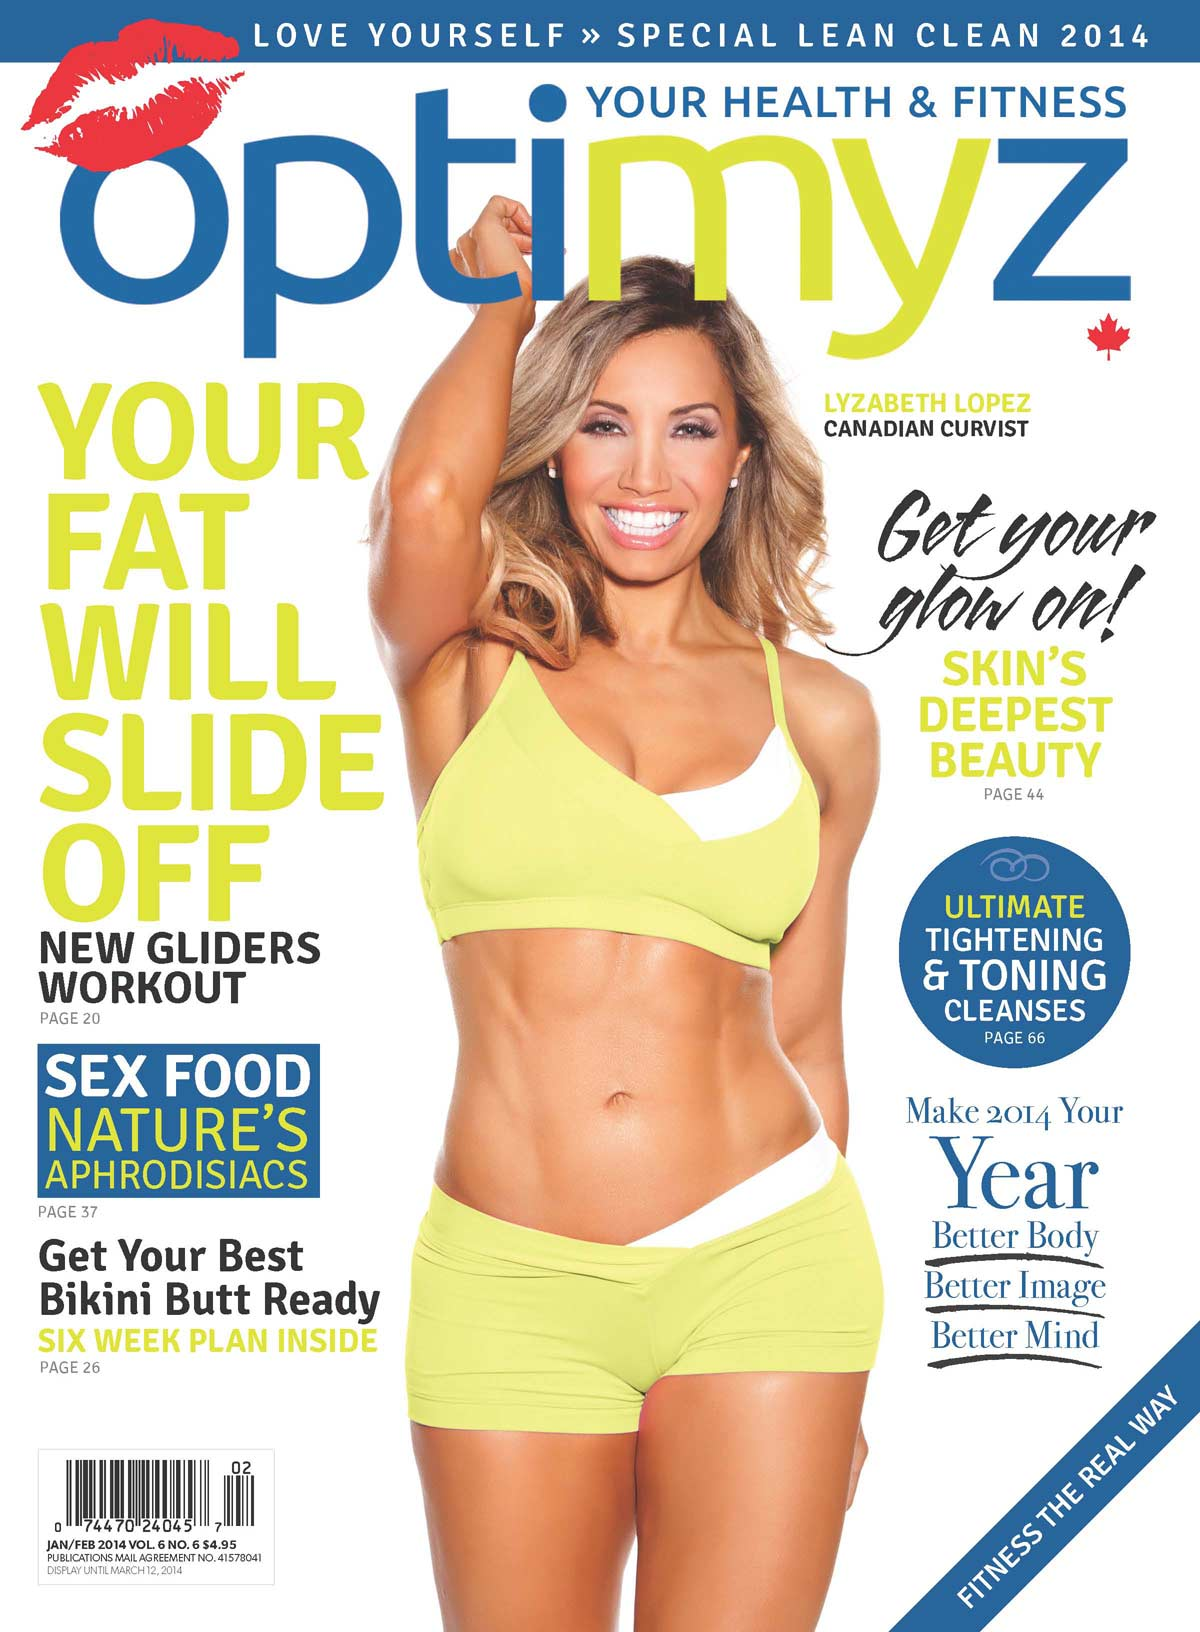 optimyz-cover-lyzabeth-lopez